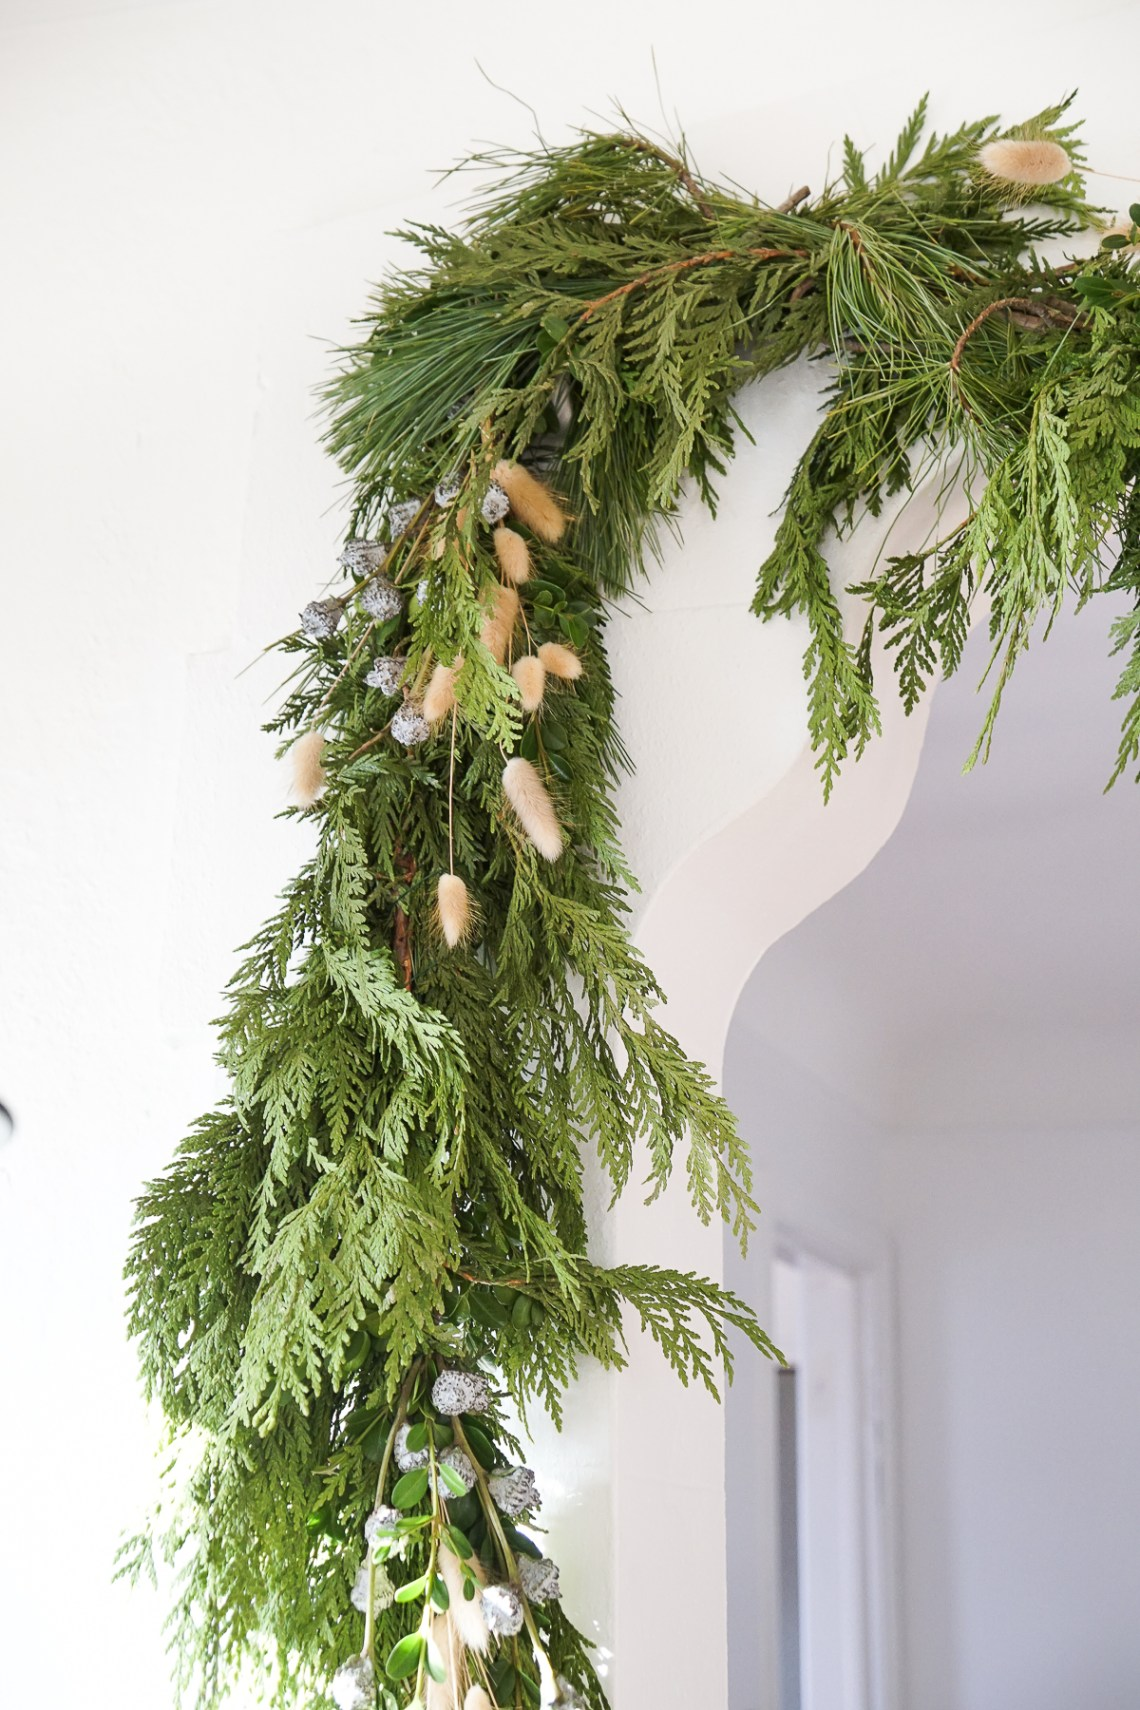 What I use to strongly, but temporarily hang garland in my house without damaging the walls.